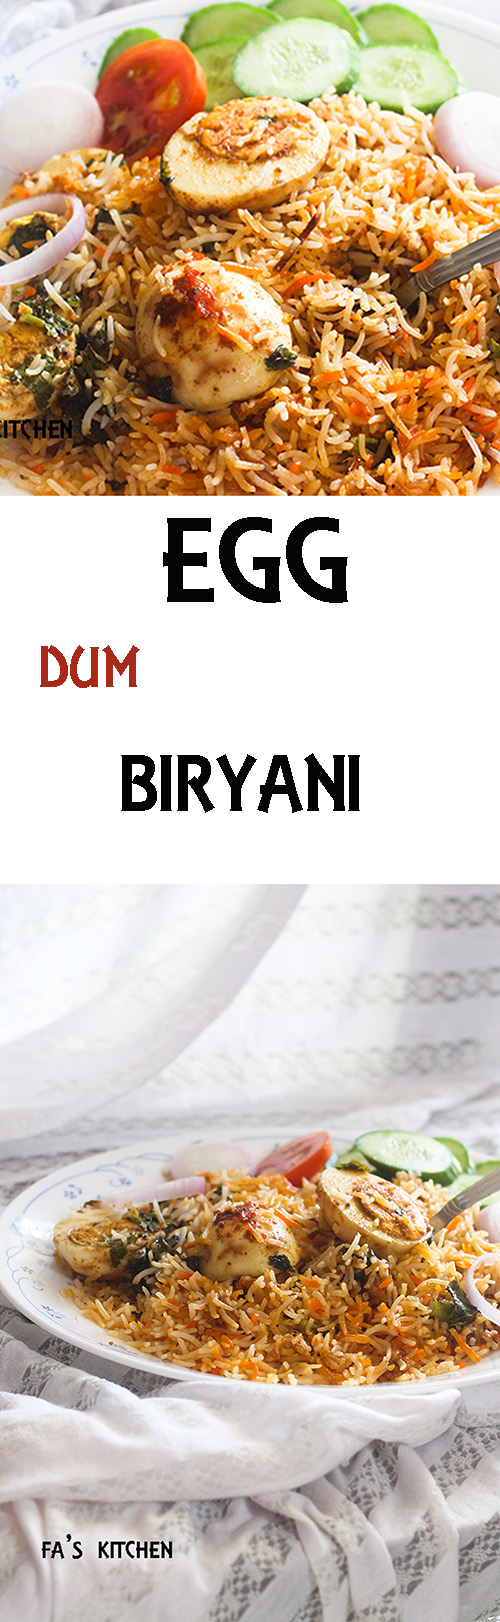 Egg Dum Biryani recipe, a very tasty and easy biryani preparation that gets ready in a jiffy. You will amazed at how easy and how tasty this recipe is.